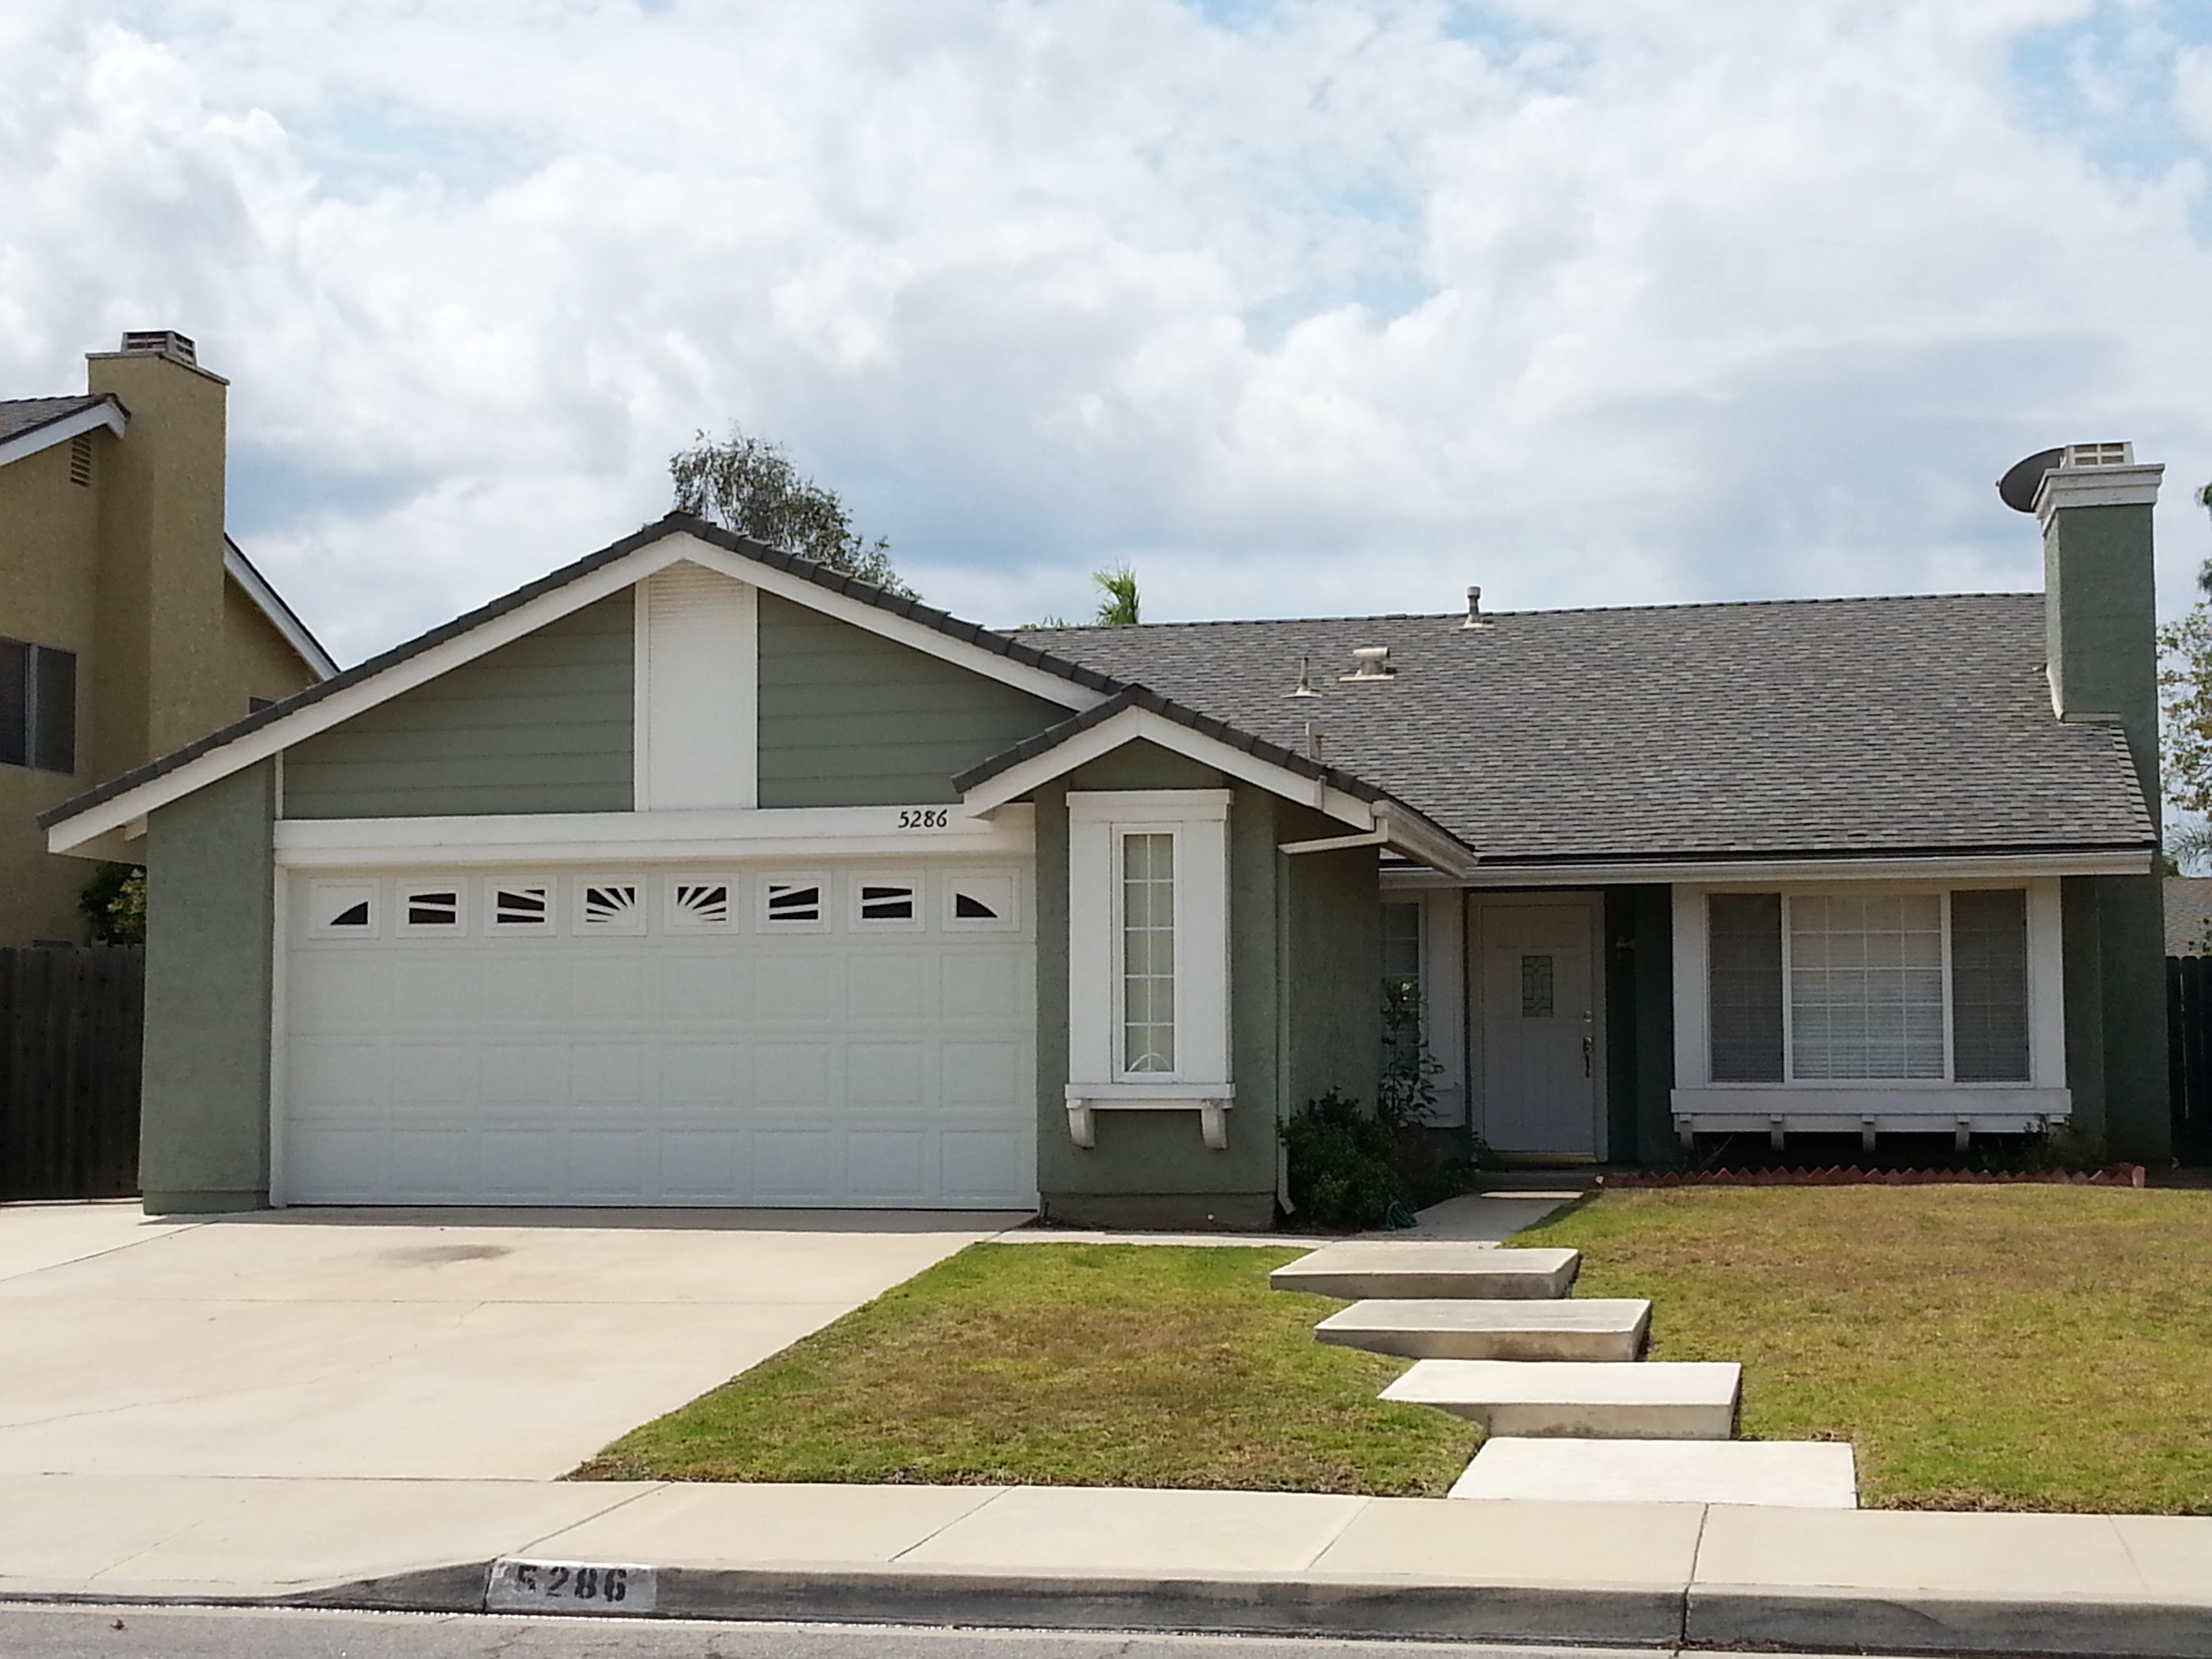 5286 Fernridge Court, Camarillo 1